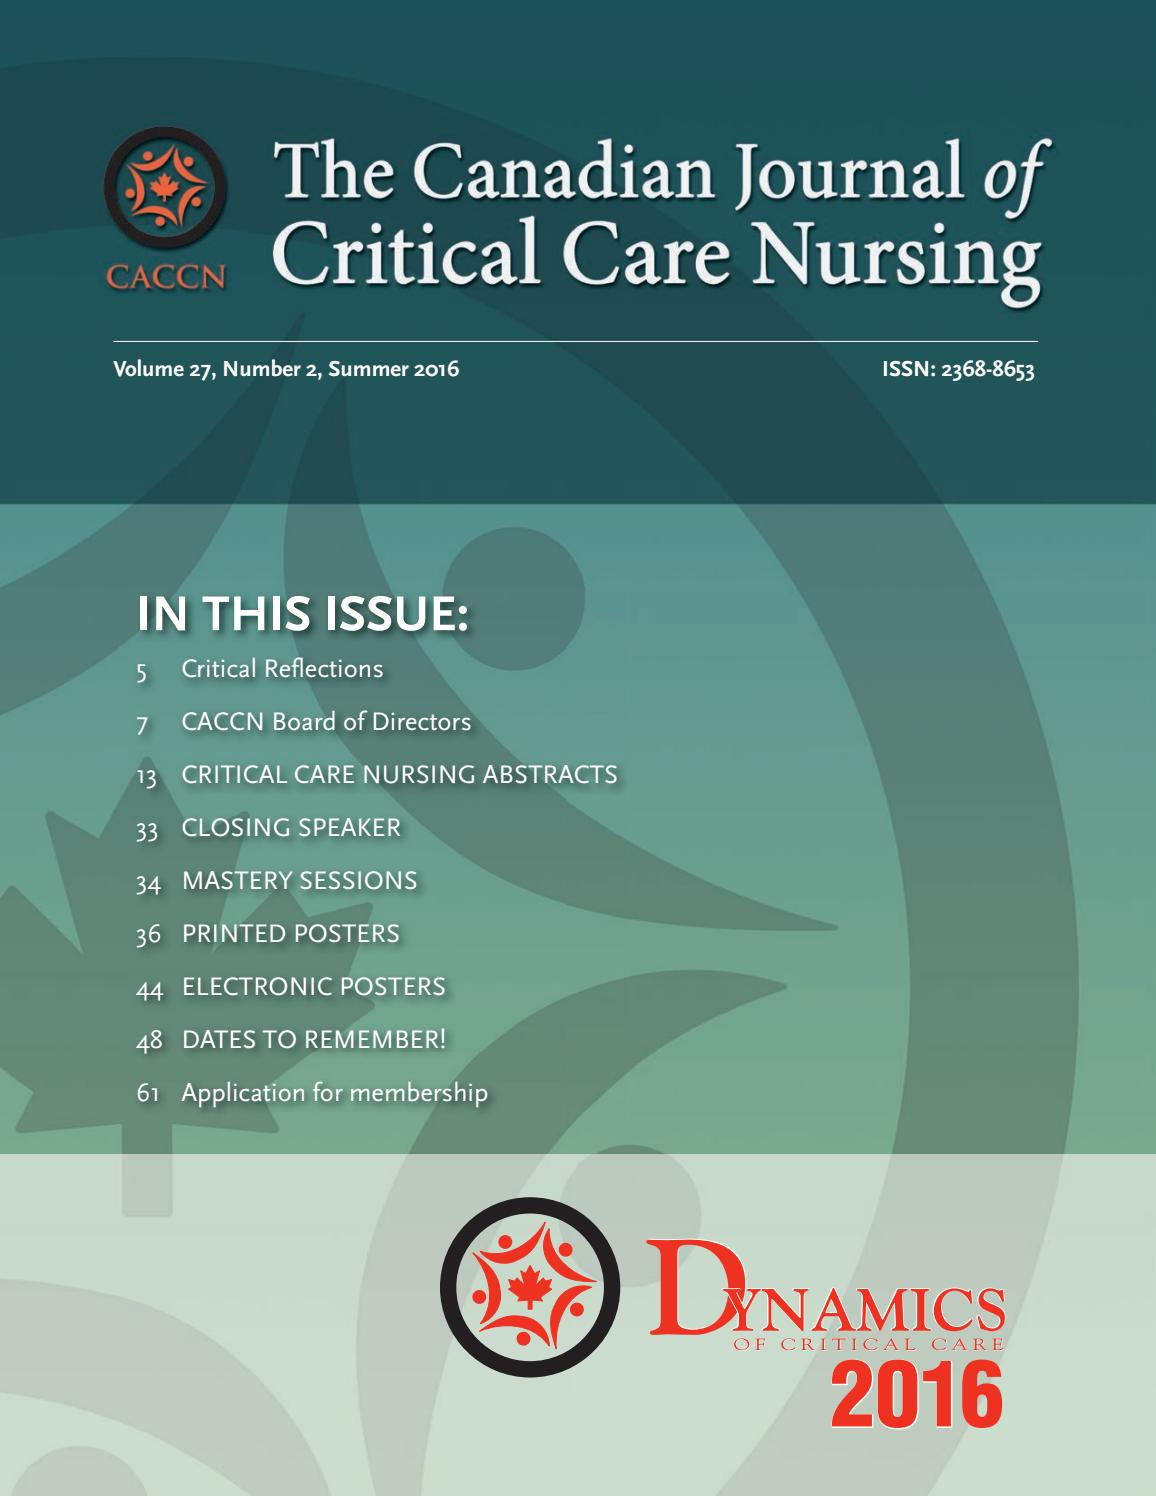 The canadian journal of critical care nursing volume 27 number 2 the canadian journal of critical care nursing volume 27 number 2 by pappin communications issuu xflitez Image collections